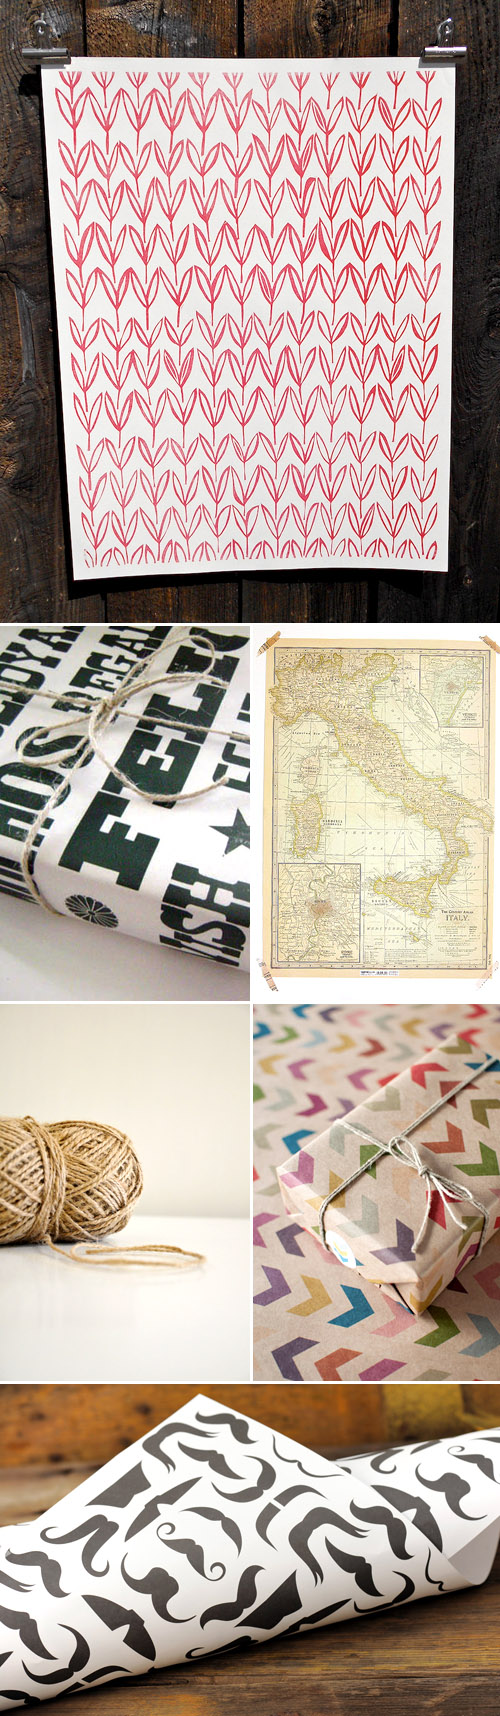 holiday gift wrap ideas from Etsy.com | via junebugweddings.com